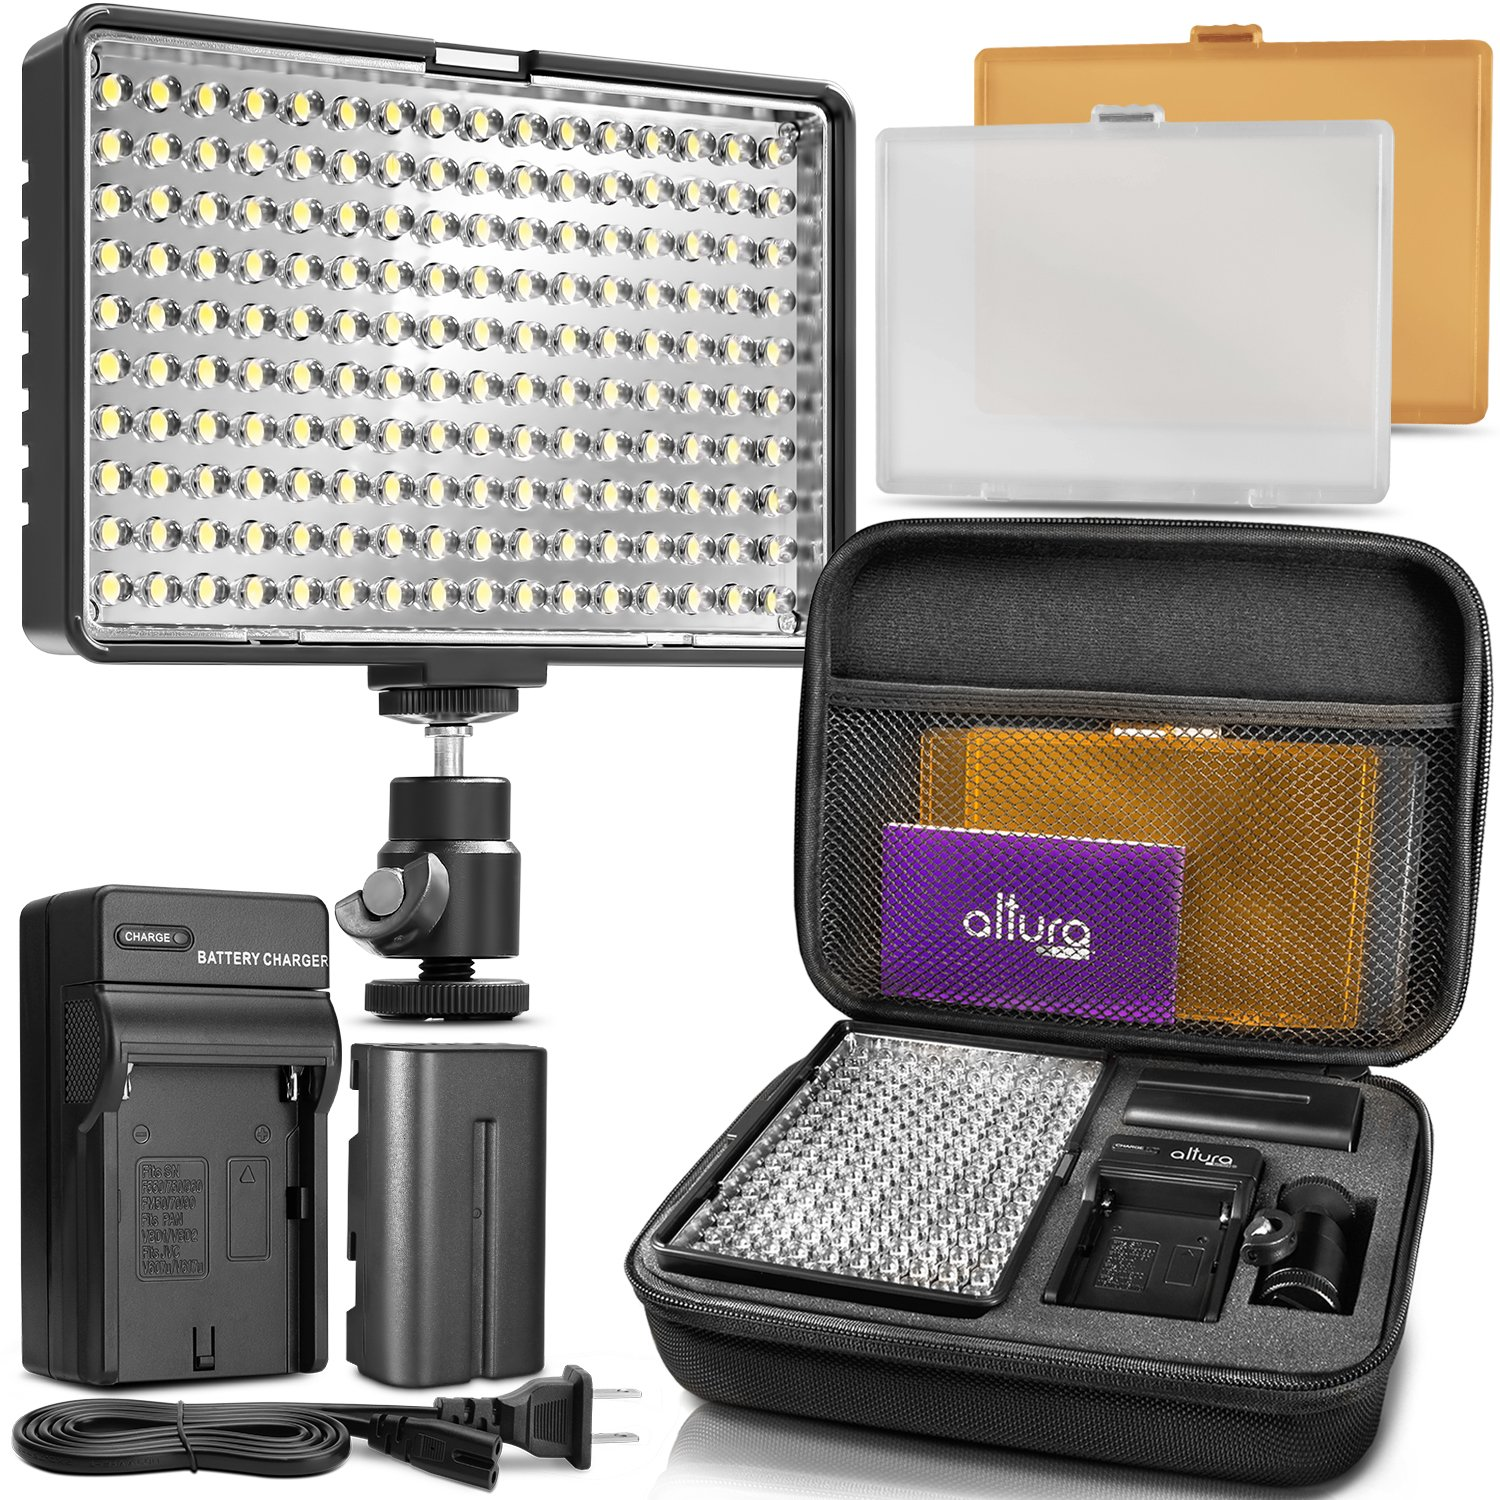 Altura Photo 160 LED Video Light for DSLR Camera and Camcorder Complete Kit – Ultra Bright Dimmable with Battery, Charger, Filters, and Carry Case (Canon, Nikon, Panasonic, Sony, Samsung, Olympus) by Altura Photo